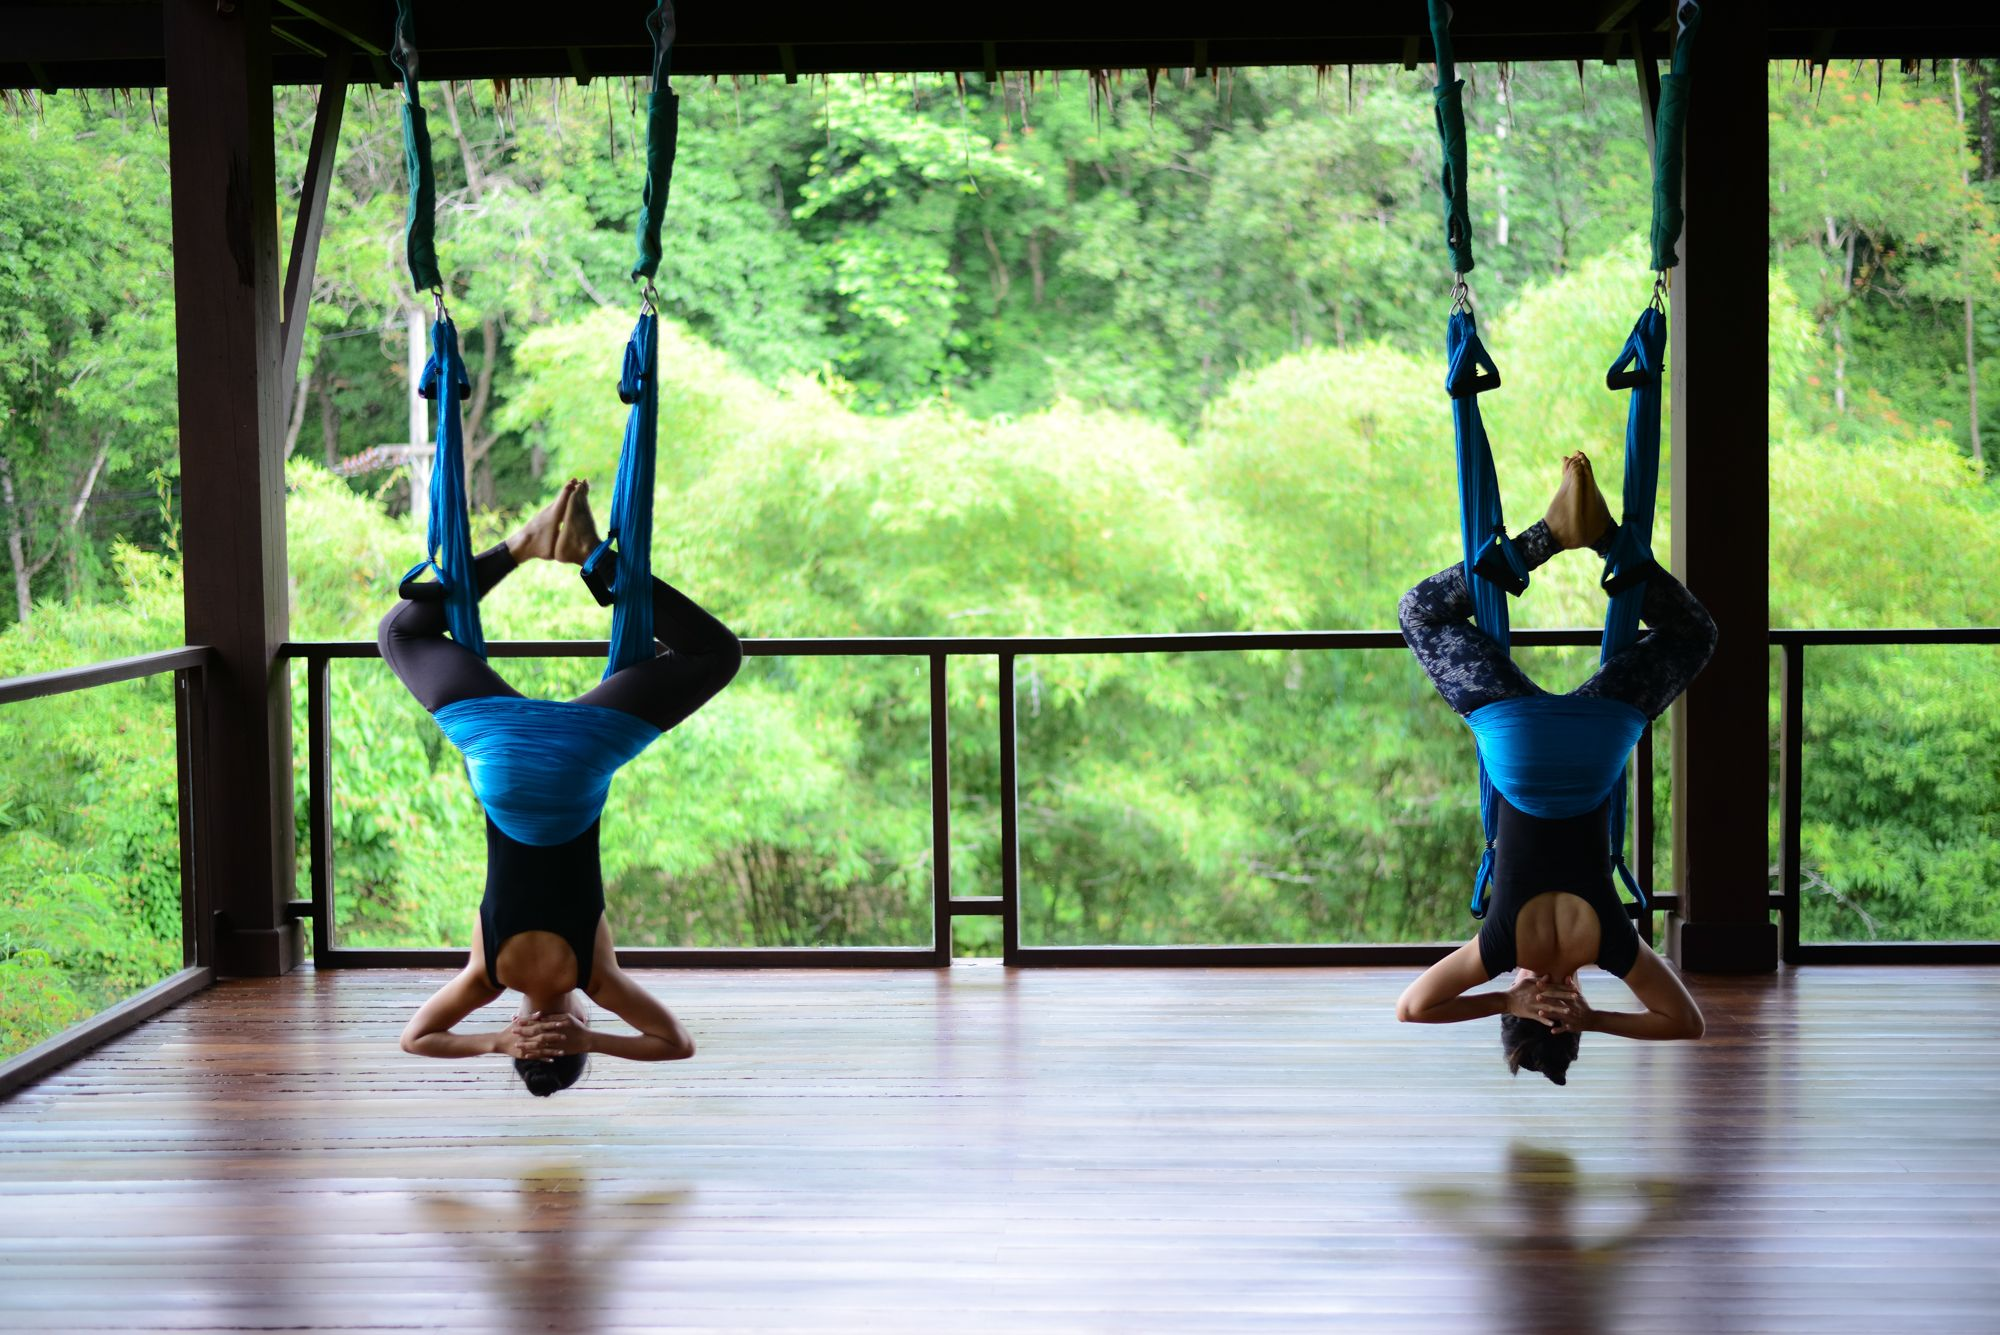 Aerial yoga hatha yoga supported by a soft hammock to explore